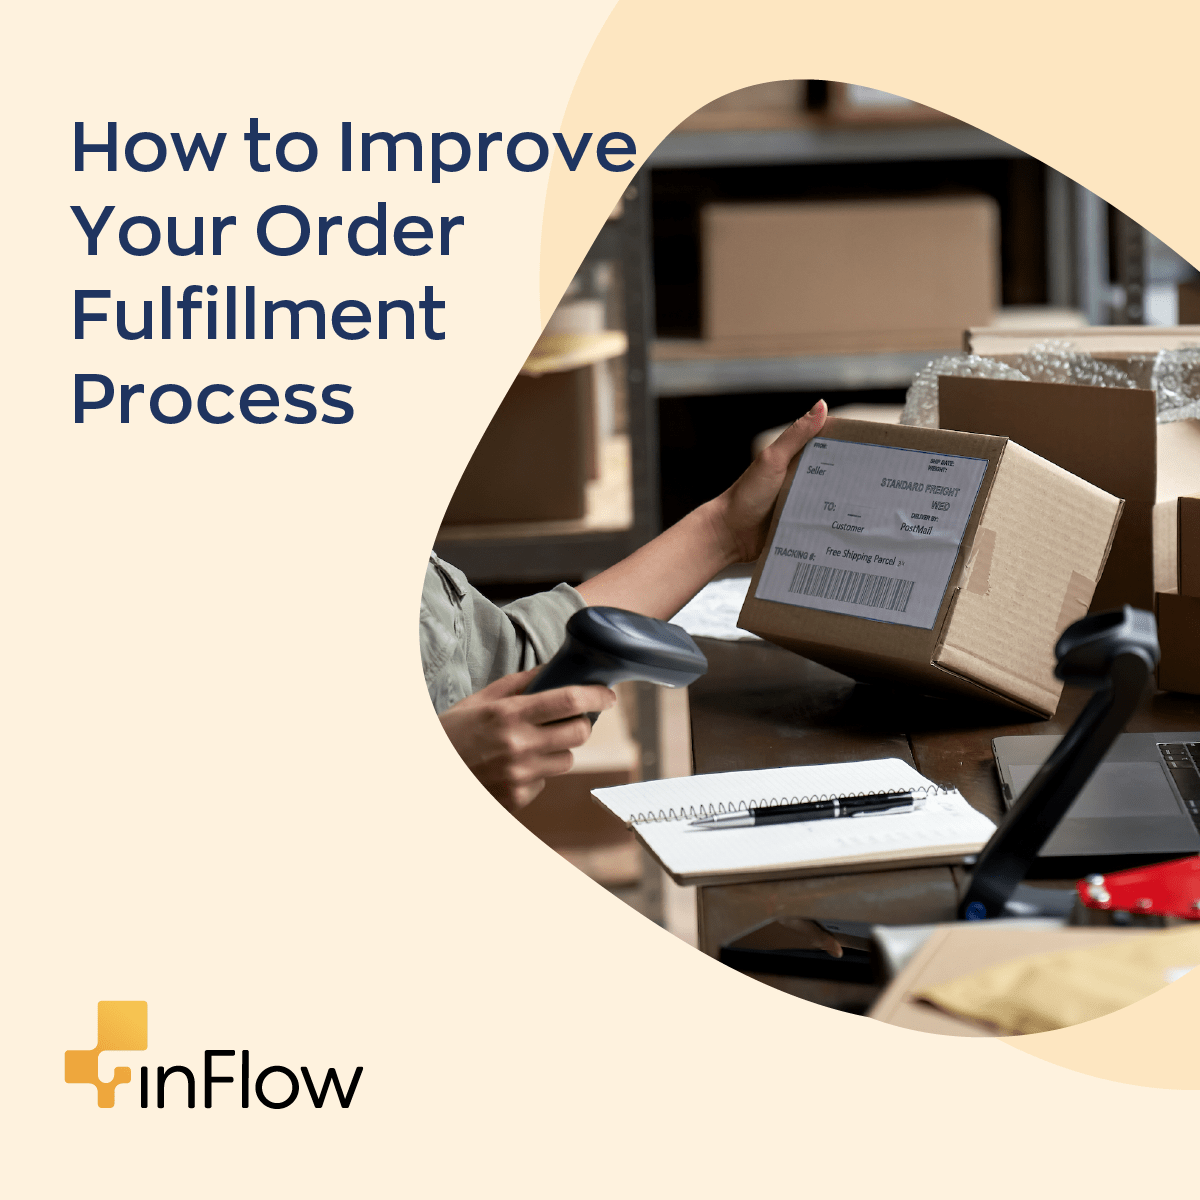 How to improve your order fulfillment process